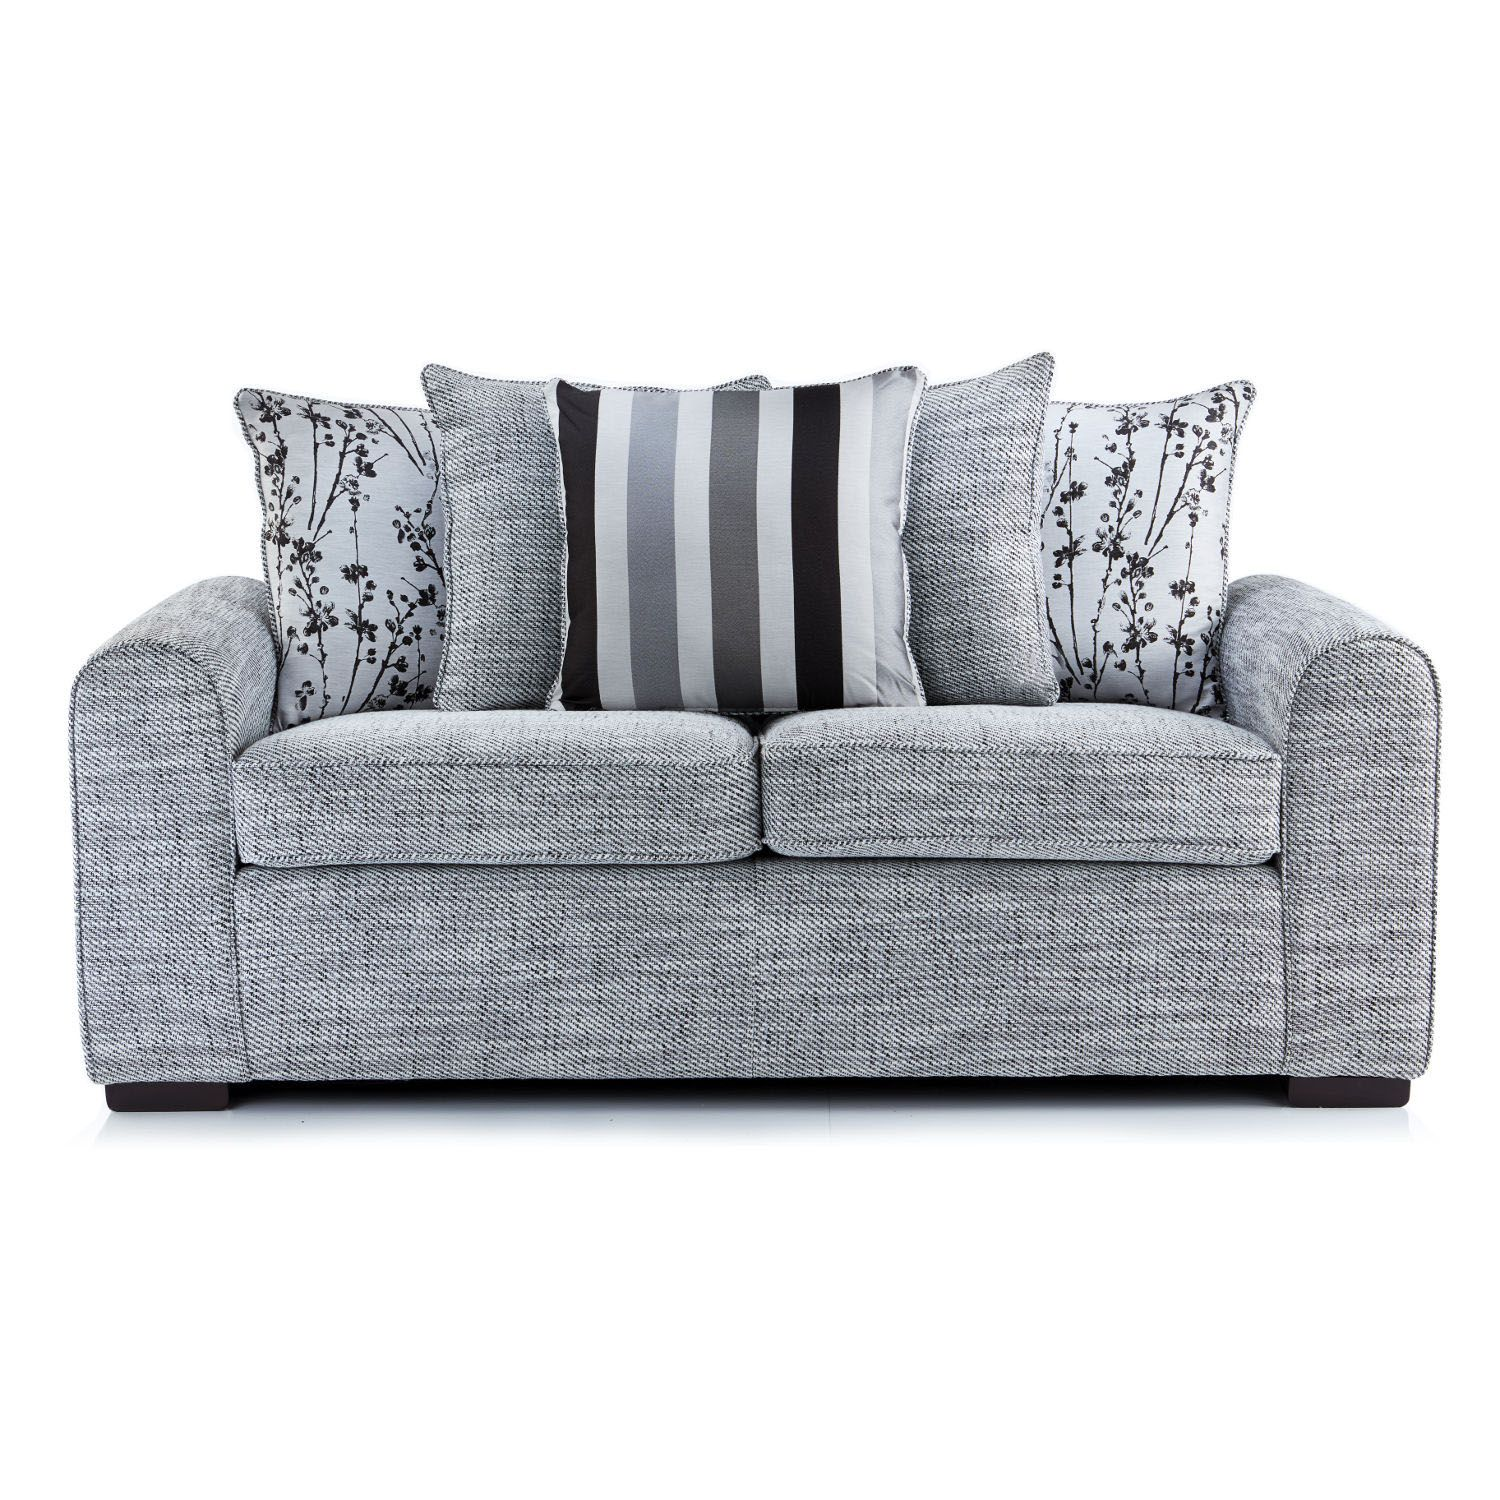 3 Seater Sofa Designs In Kenya In 2020 Sofa Design Fabric Sofa Affordable Sofa